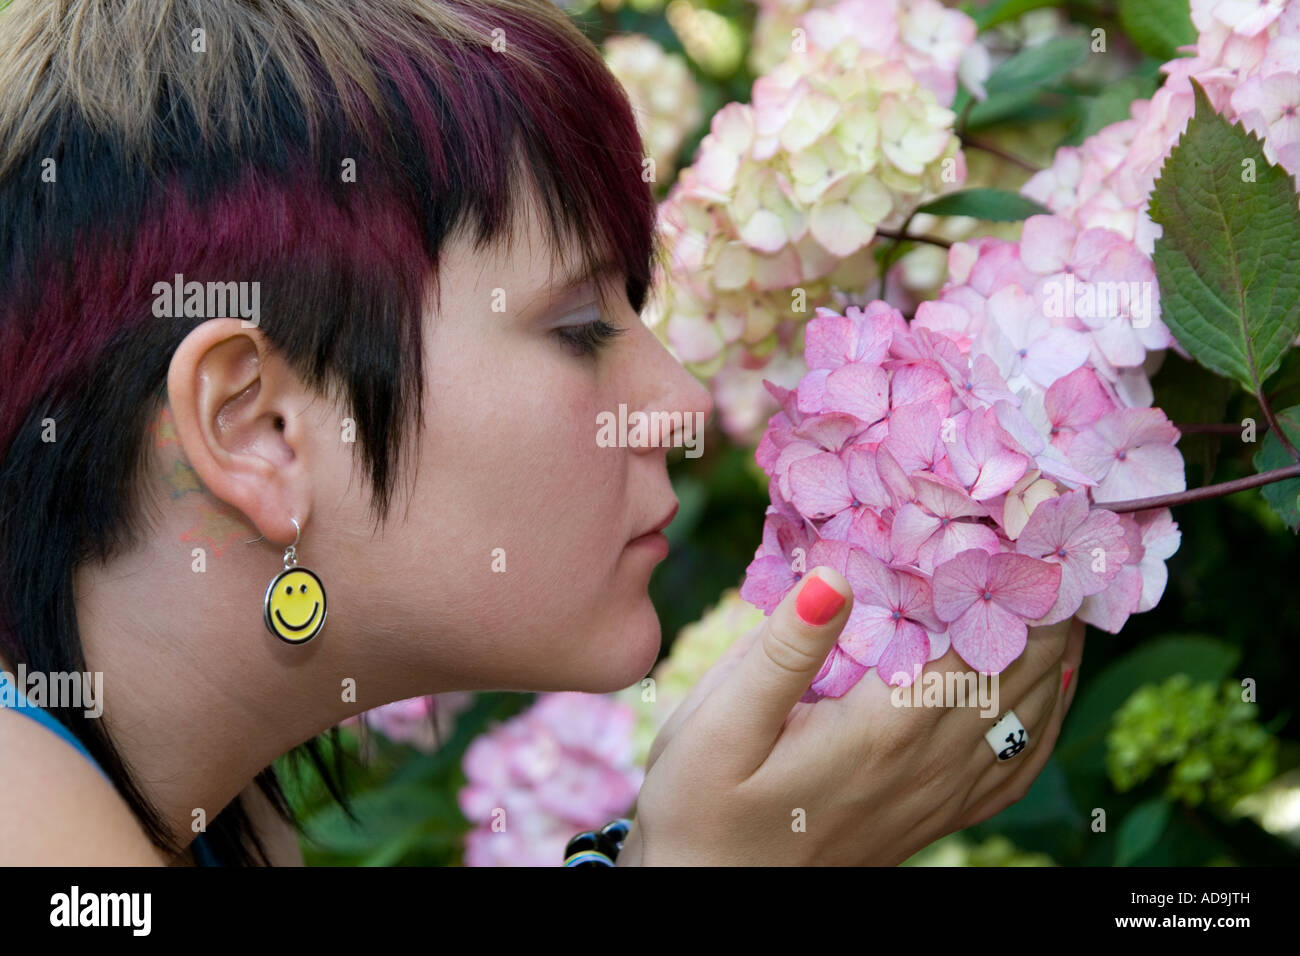 "Woman wearing ""smiley face earrings"" smelling pink flowers inside the Dundee University Botanical Gardens, UK Stock Photo"